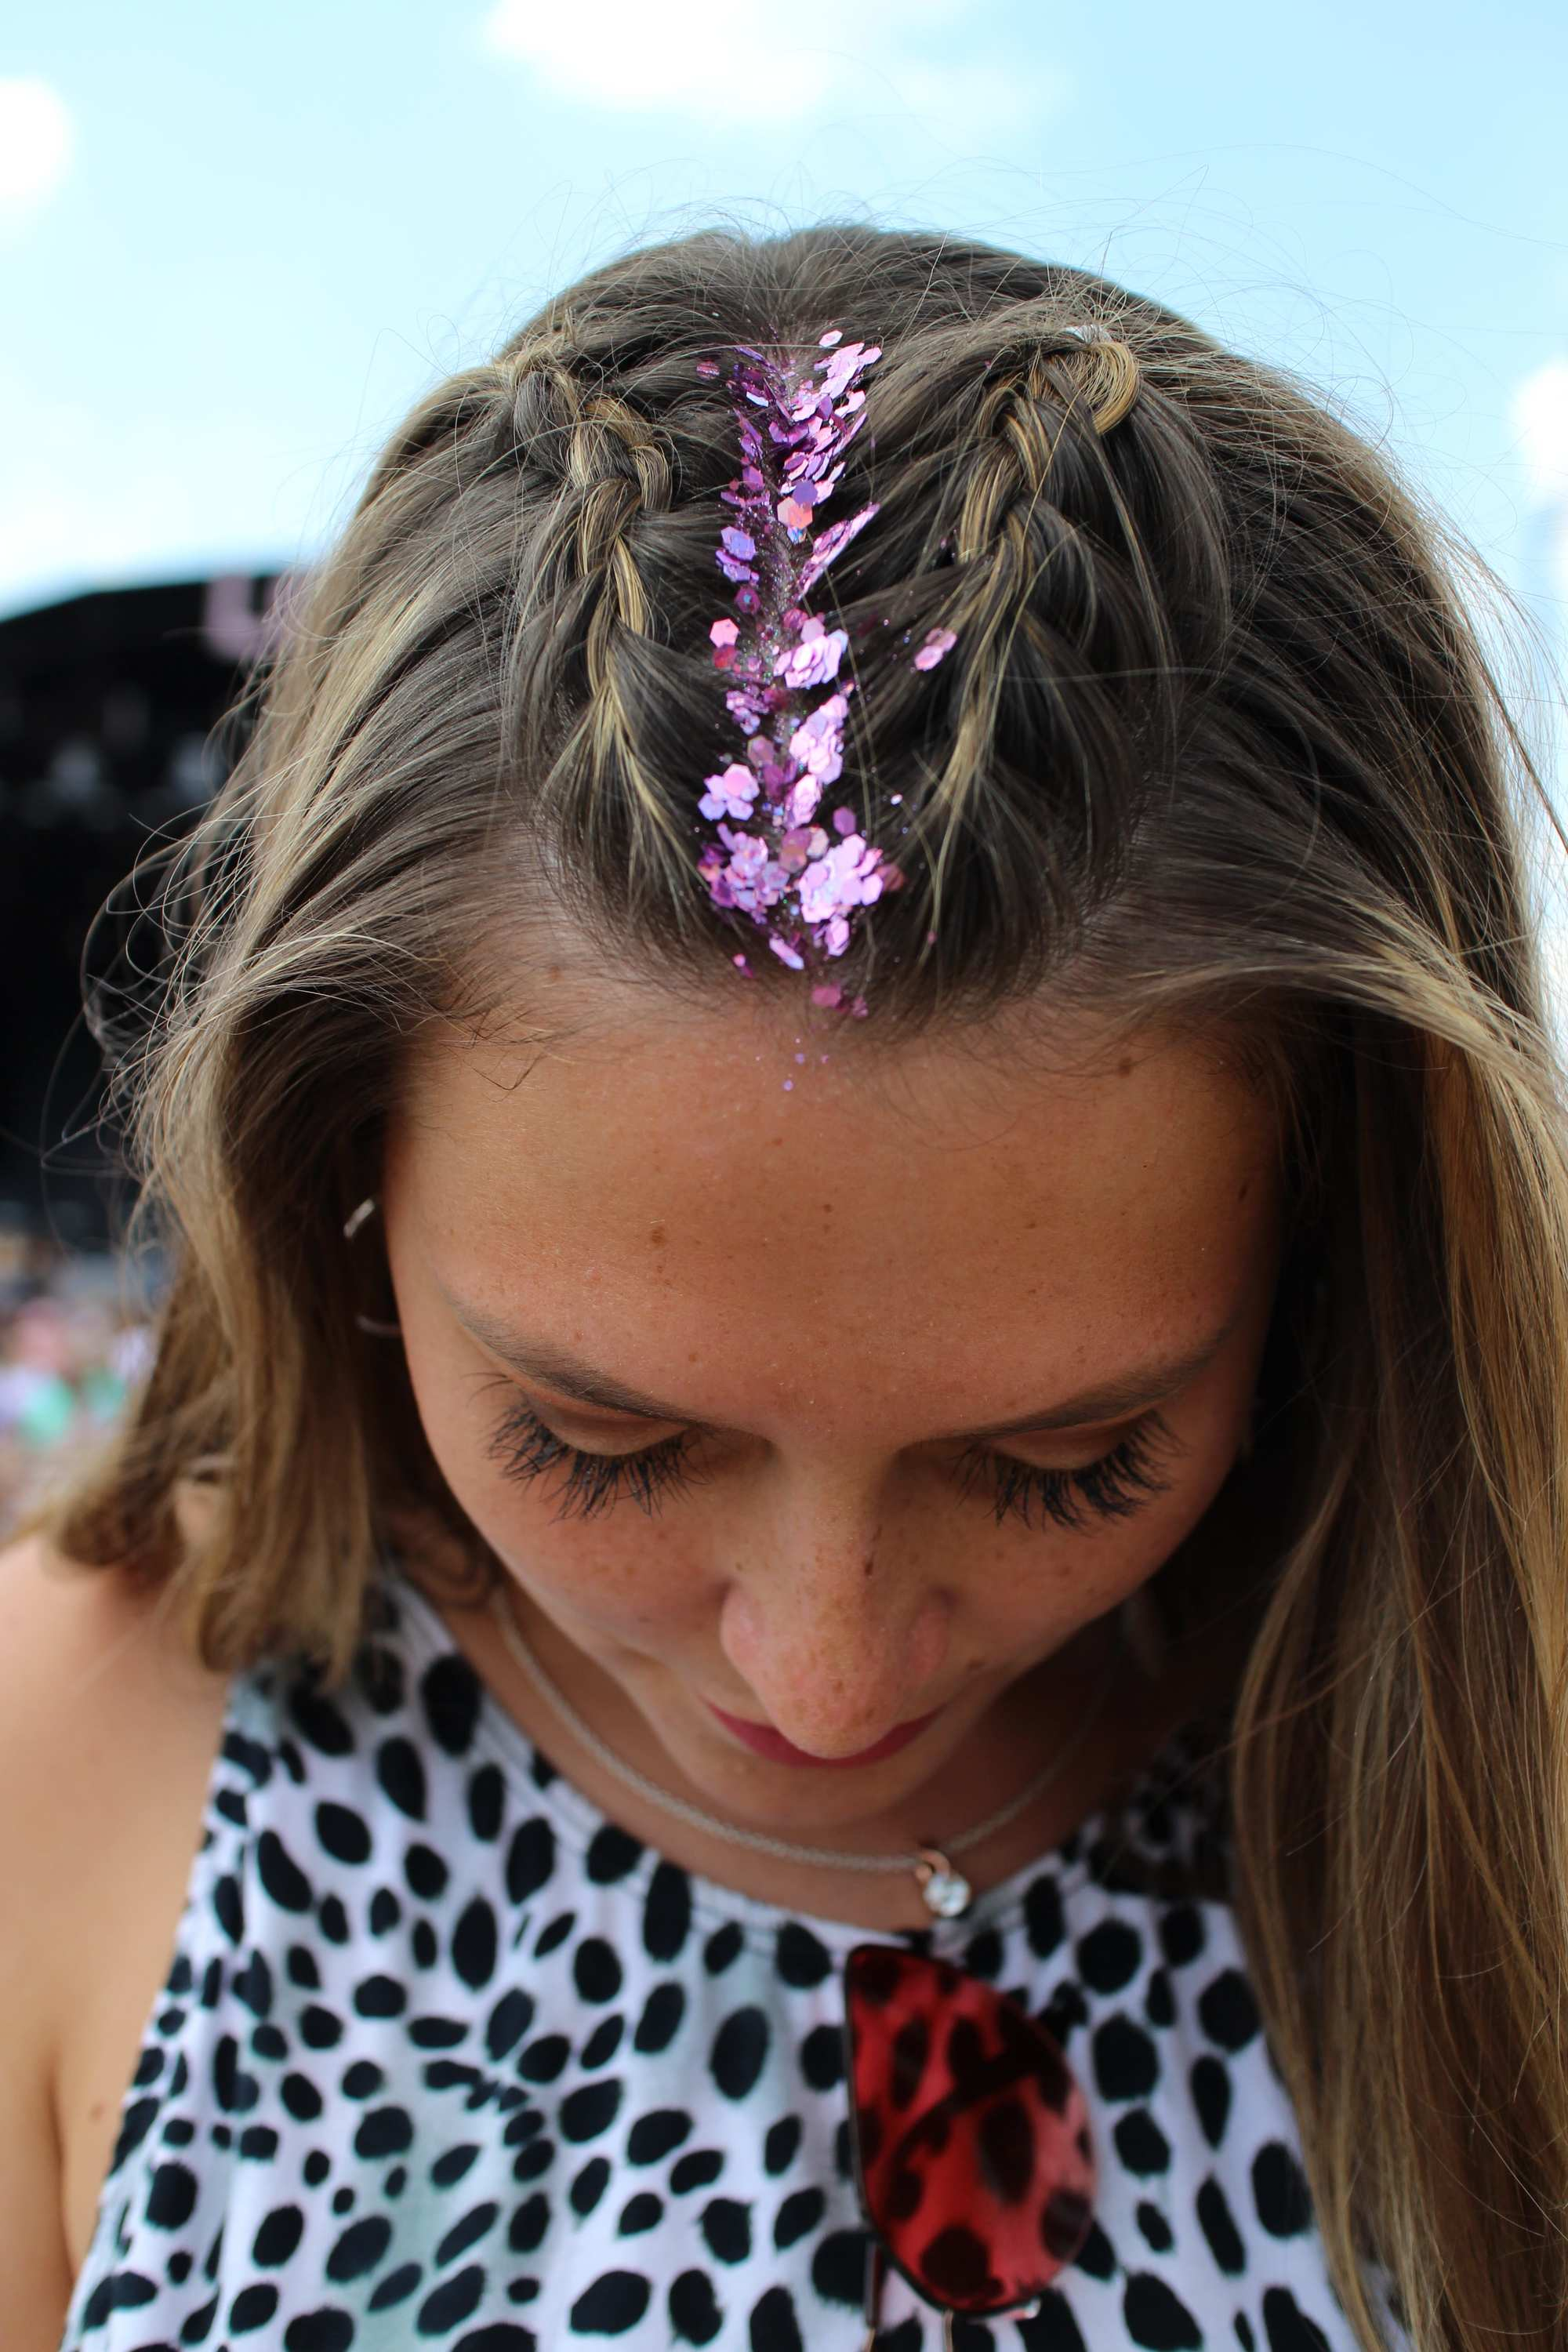 Close-up shot of a woman with dark blonde hair with chunky purple glitter roots and two unicorn braids with her hair down and straight, wearing an animal print top